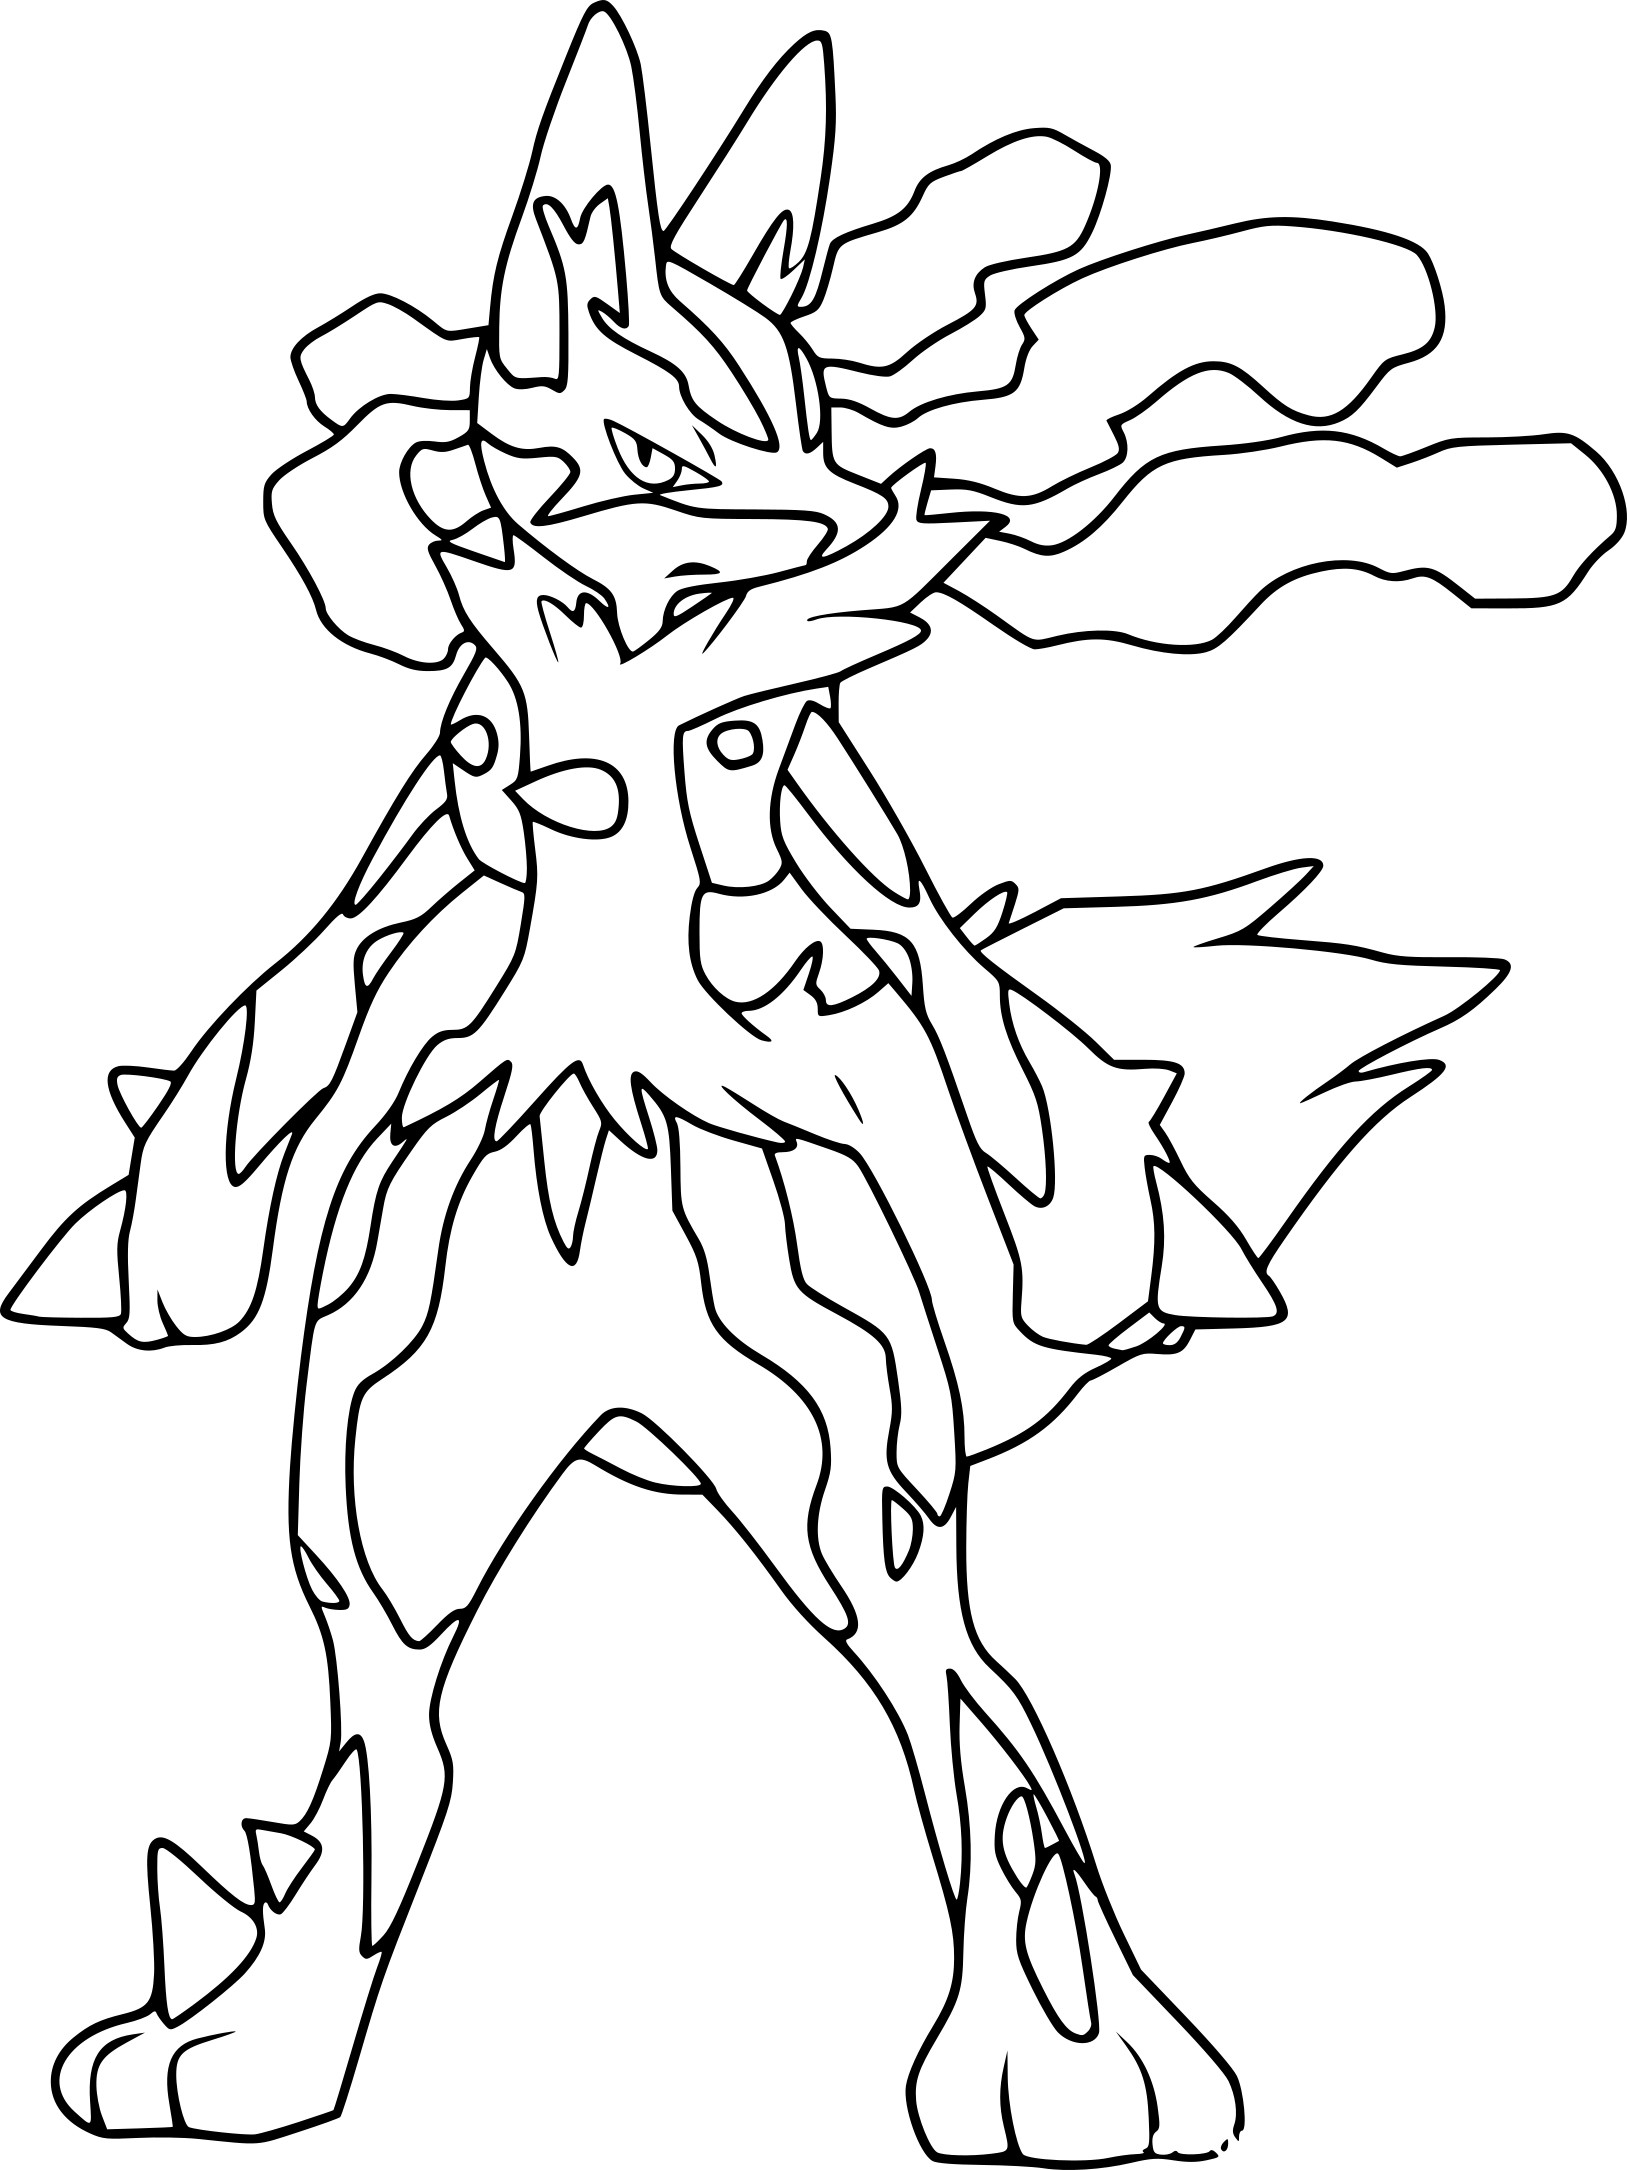 159 Dessins De Coloriage Pokemon à Imprimer